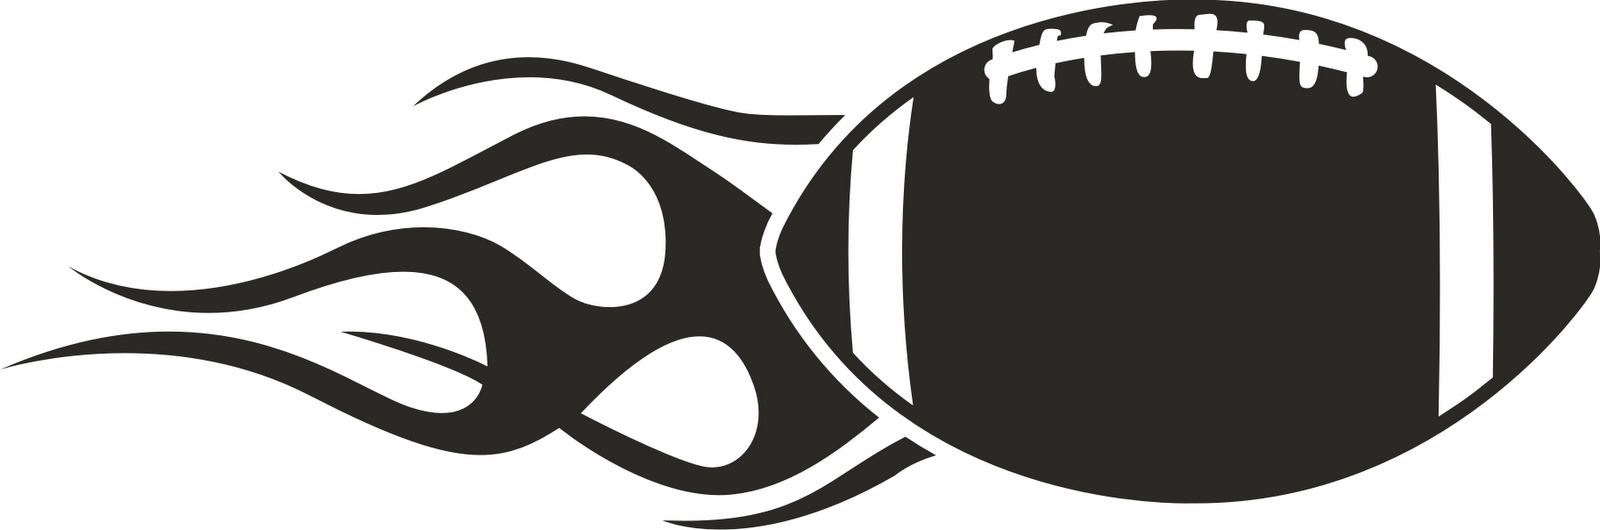 American Football Clipart & American Football Clip Art Images.